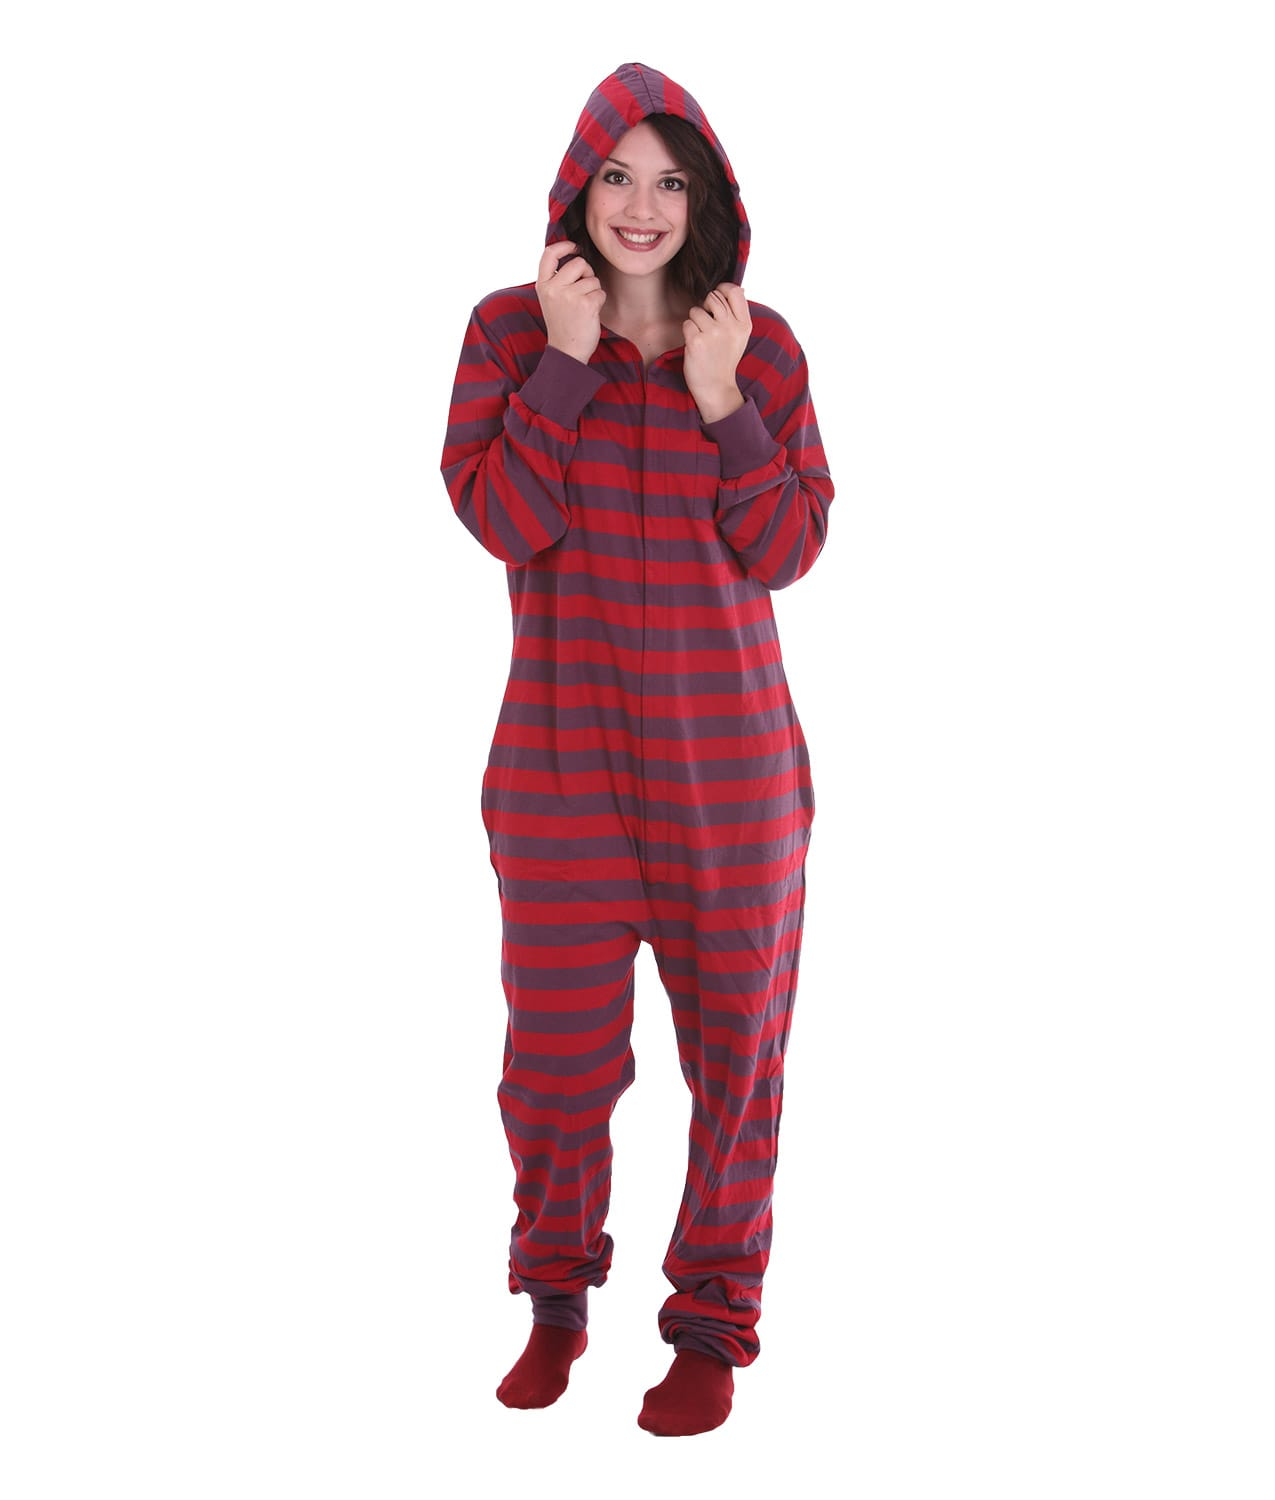 Onesie Hooded Pajama Suits for Adults We have been selling Hooded Pajama Suits since so we know that our customers are all different and want a wide choice of styles. From customer feedback we have learned that most of you like the extra warmth and comfort of hooded pajama suits.